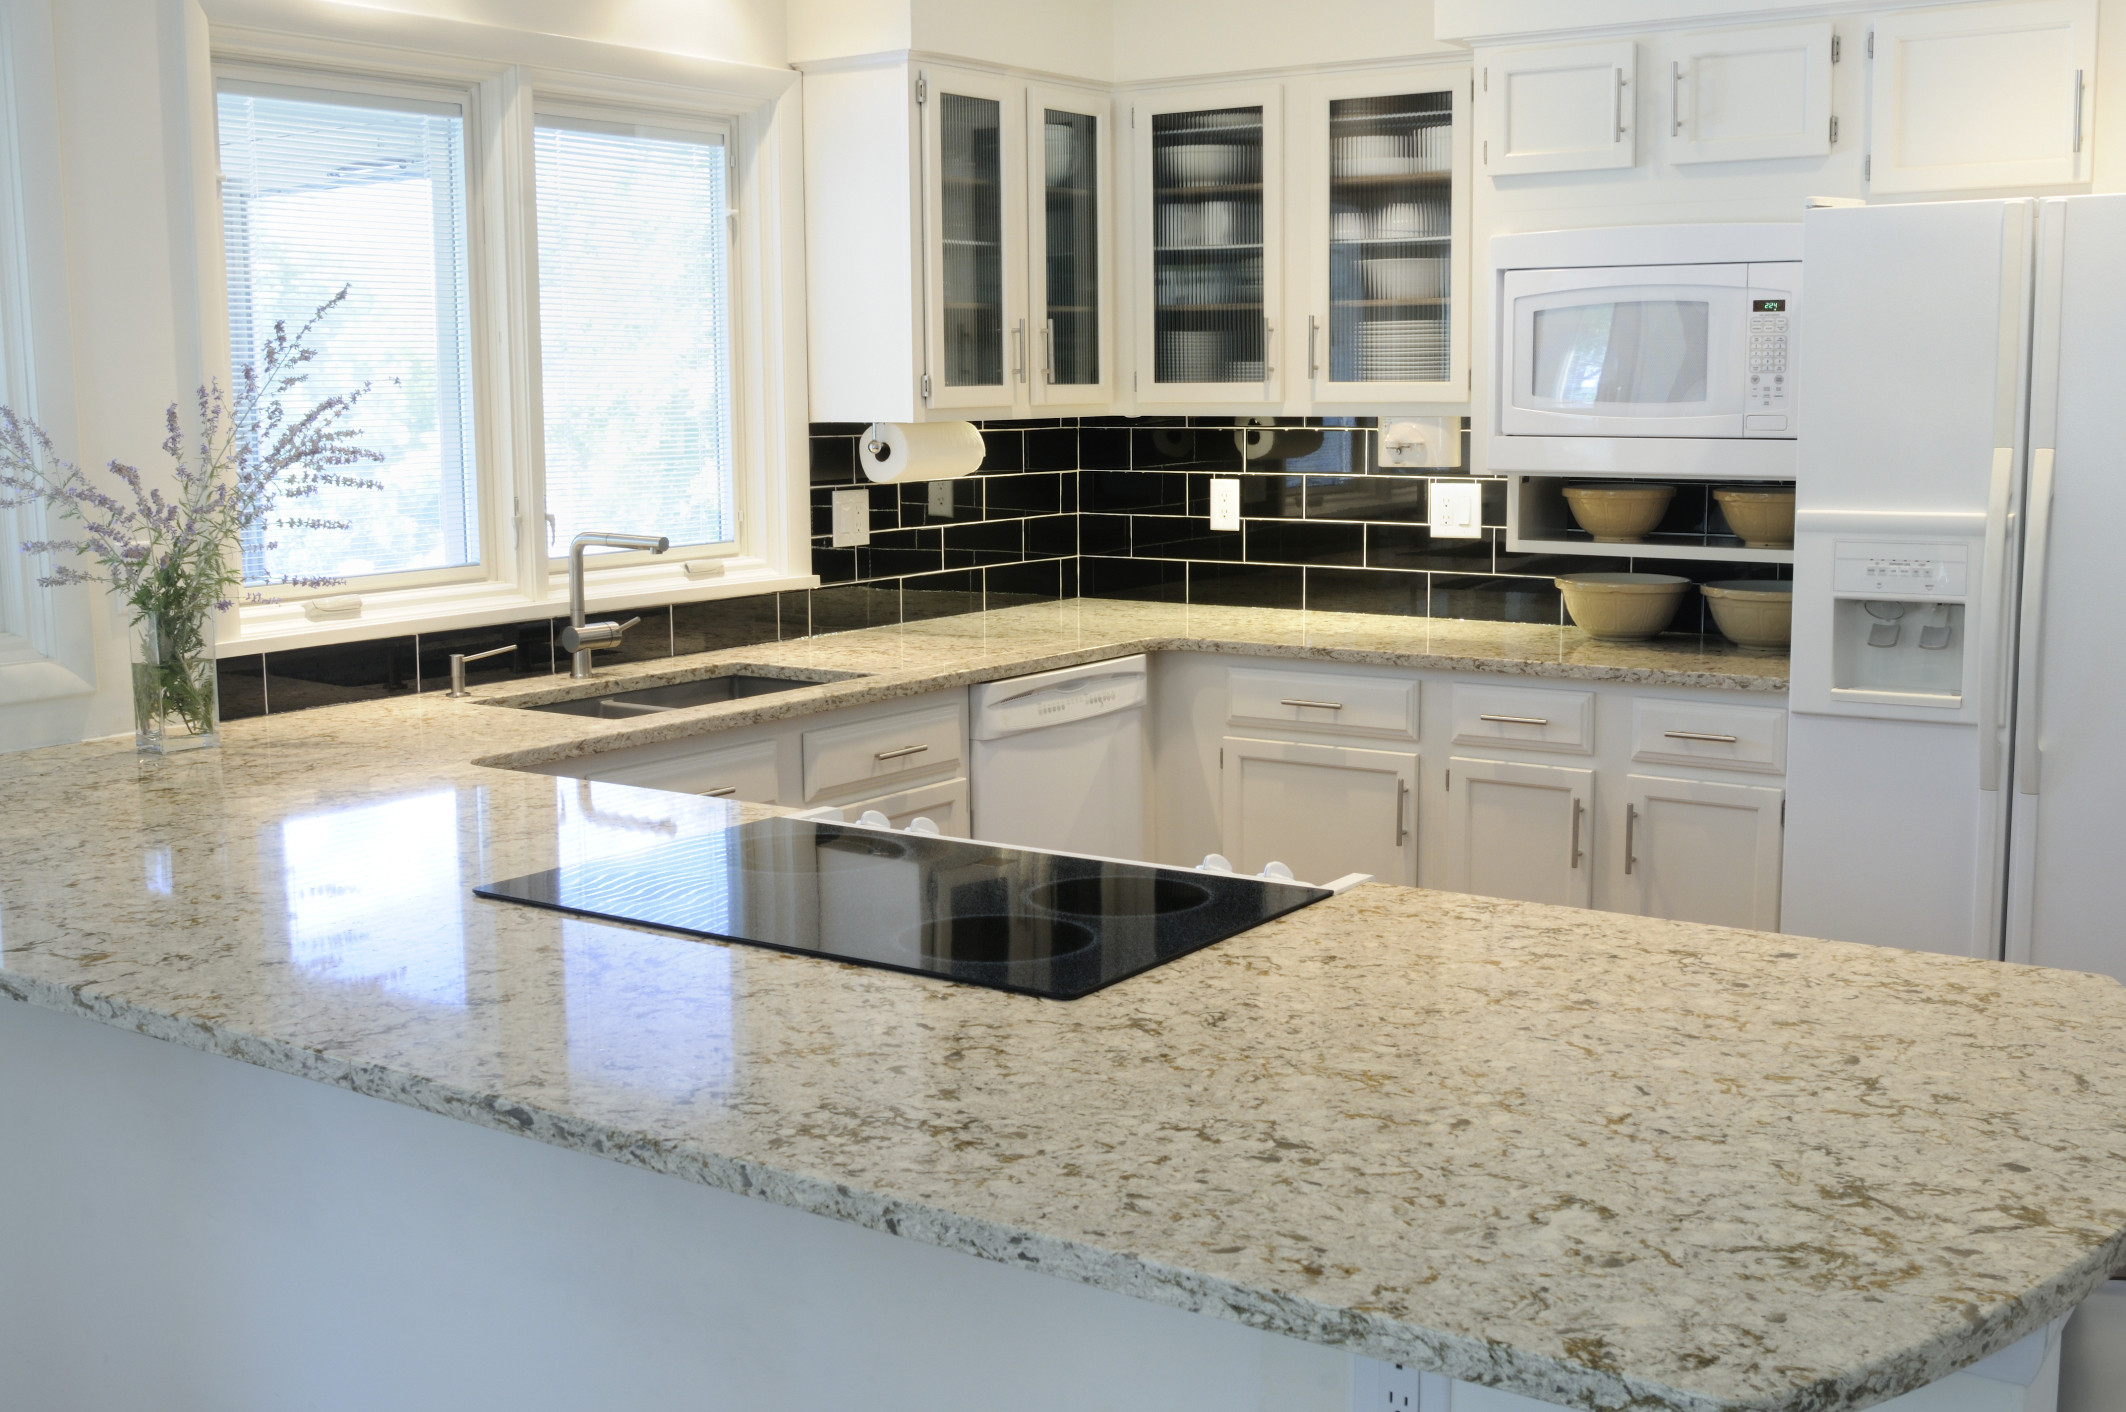 how much is the average price of granite countertops homesfeed price of granite countertops in white with wooden cabinets plus sink and black tile backsplash in